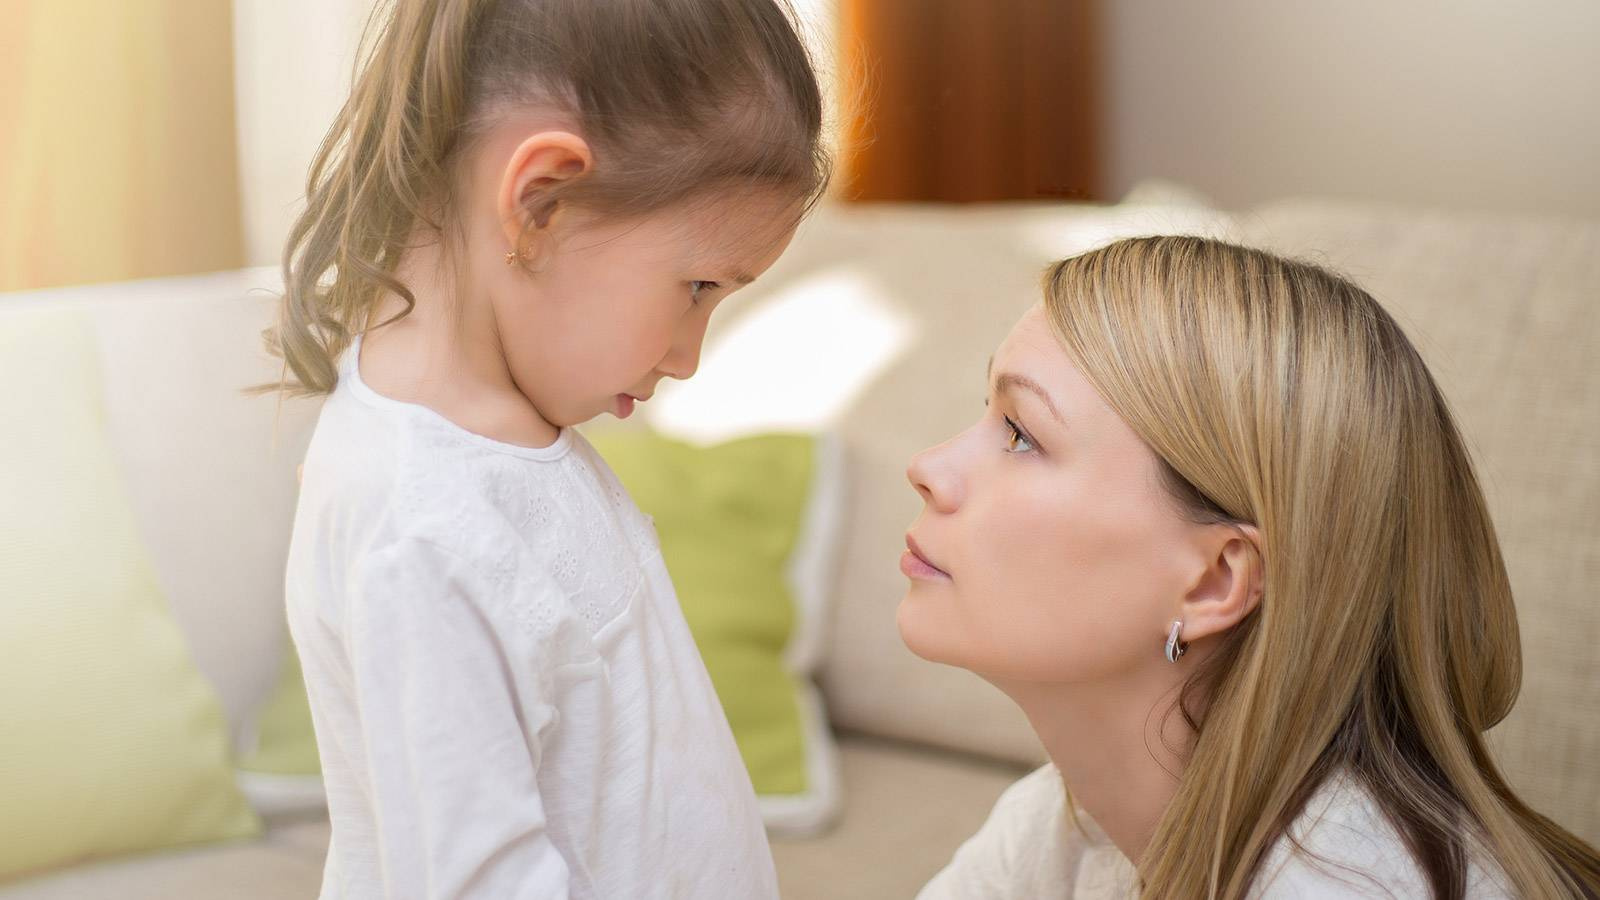 Tots-5-toddler-behavioural-issues-to-look-out-for-2